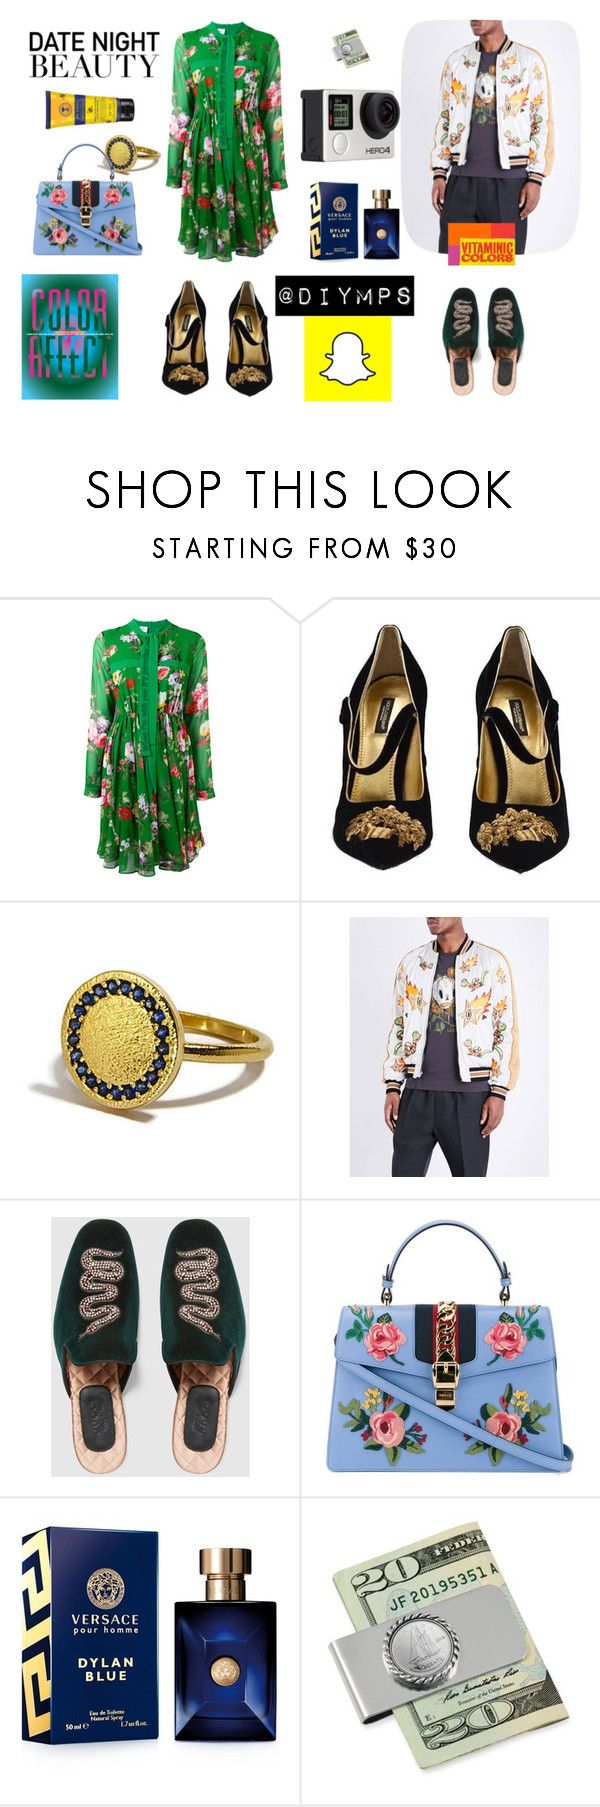 """""""Date night beaty, by @diymps"""" by diymps on Polyvore featuring Brognano, Dolce&Gabbana, Coach 1941, Gucci, Versace, American Coin Treasures and Billabong"""